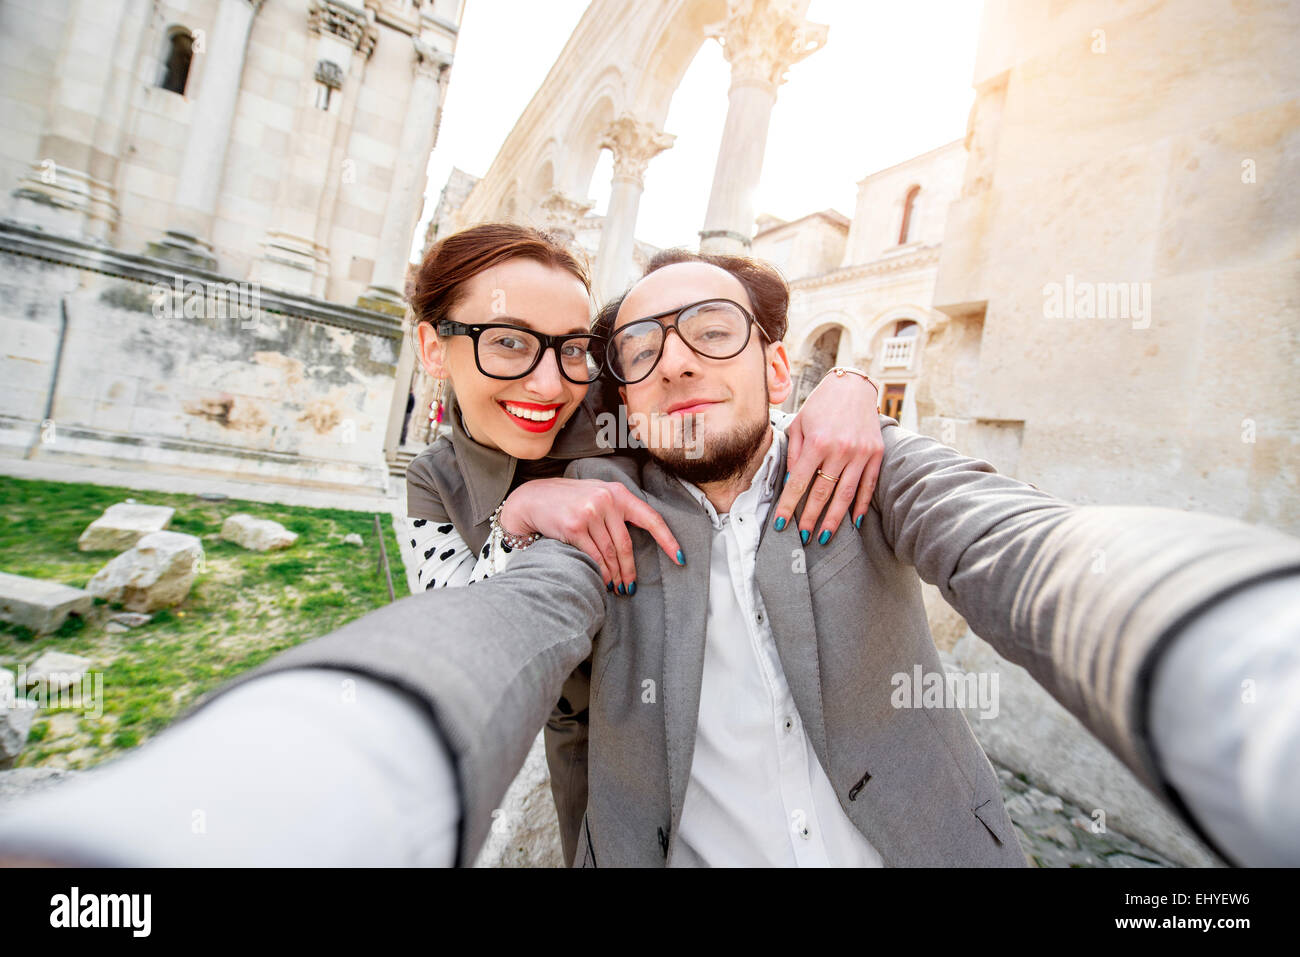 Couple taking photo selfies Photo Stock